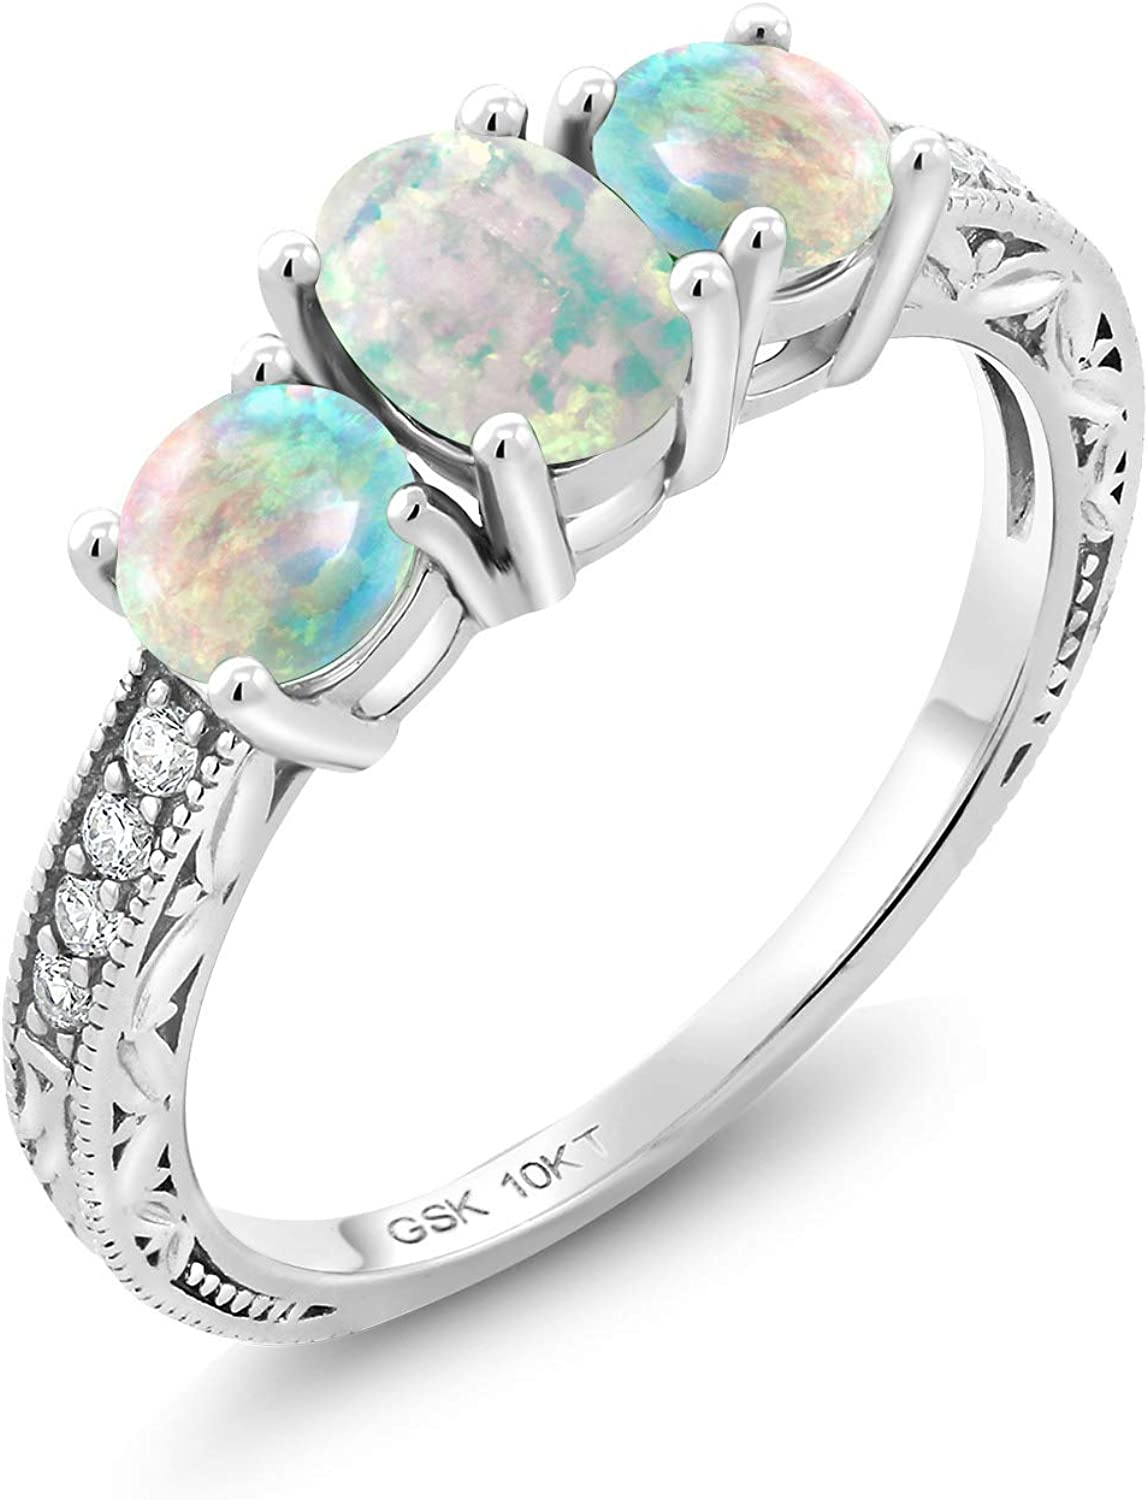 Gem Stone King 10K White Gold White Simulated Opal and Lab Grown Diamond 3 Stone Women Engagement Ring (2.04 Ct Oval Cabochon, Available in size 5, 6, 7, 8, 9)